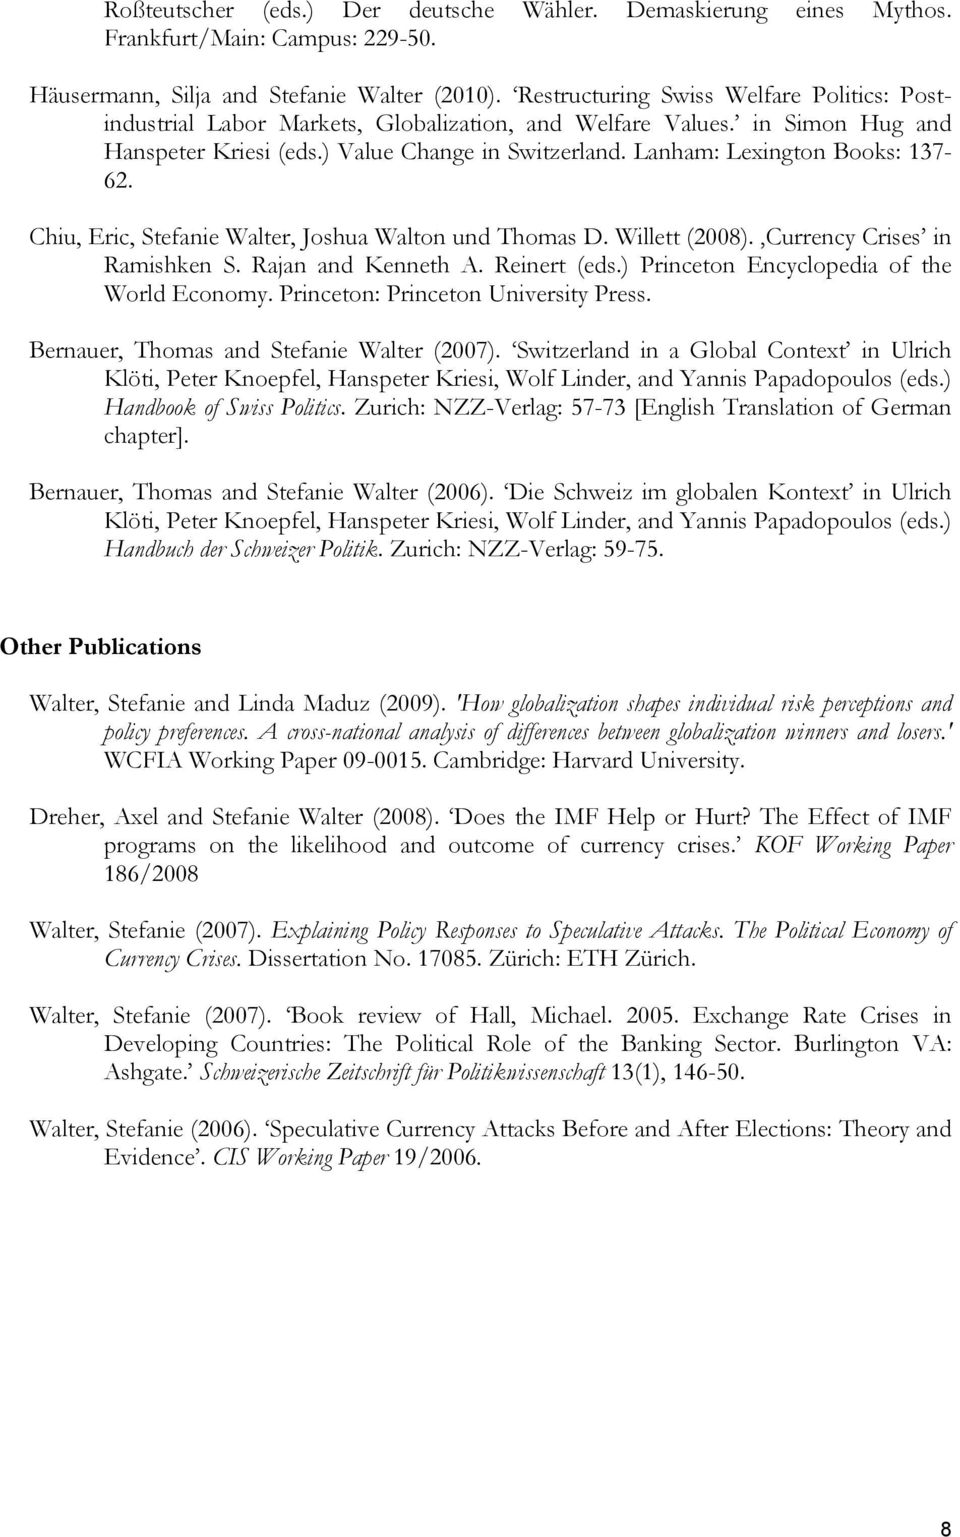 Lanham: Lexington Books: 137-62. Chiu, Eric, Stefanie Walter, Joshua Walton und Thomas D. Willett (2008). Currency Crises in Ramishken S. Rajan and Kenneth A. Reinert (eds.